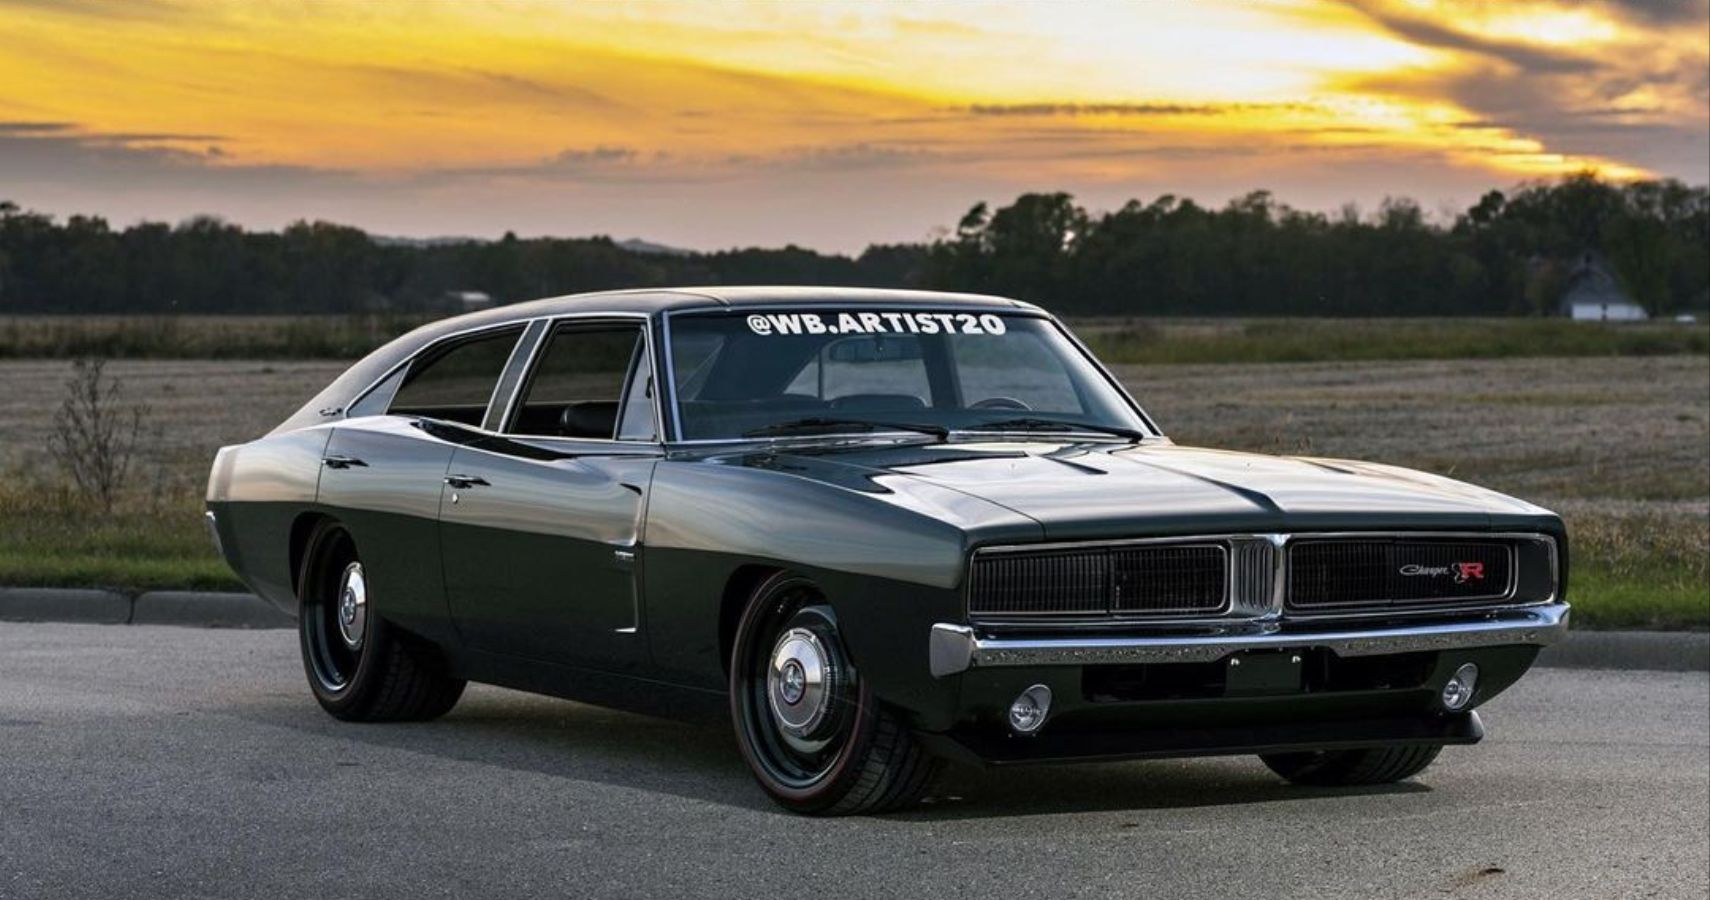 This 1969 Dodge Charger Is The Mopar Station Wagon The Magnum Should've Been